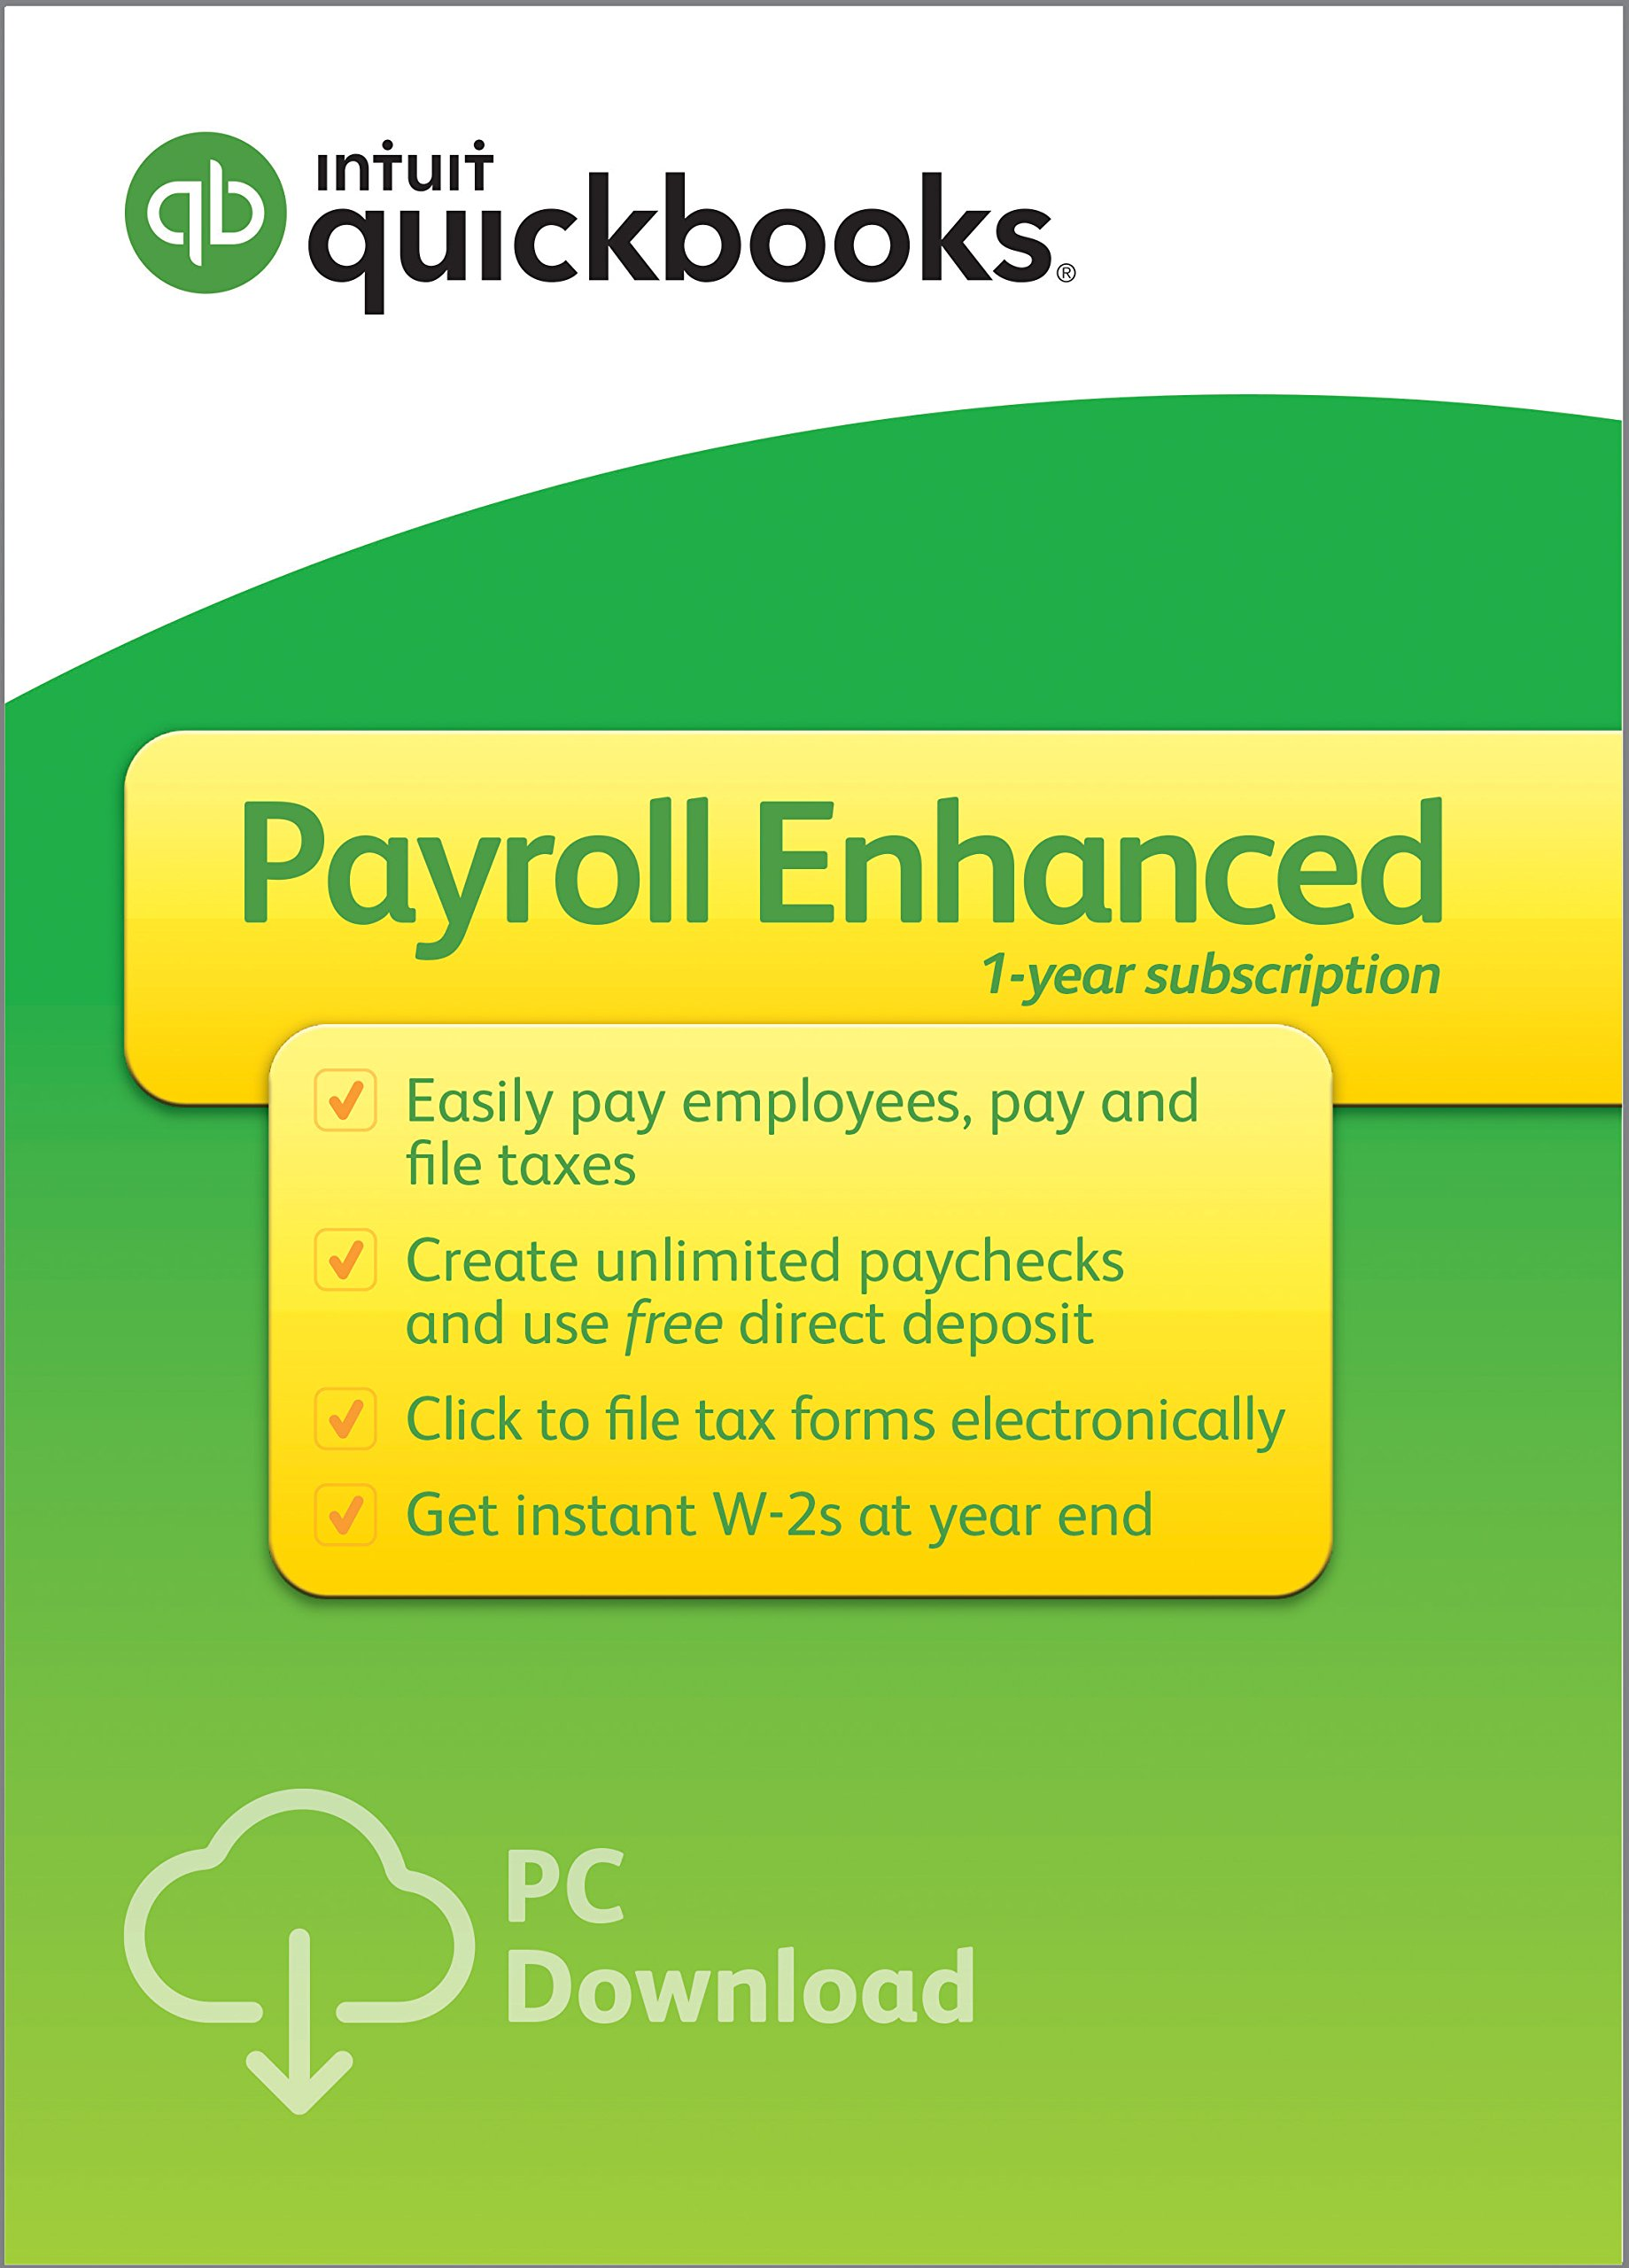 QuickBooks Desktop Enhanced Payroll 2019, 1 Year Subscription [PC Download] by Intuit